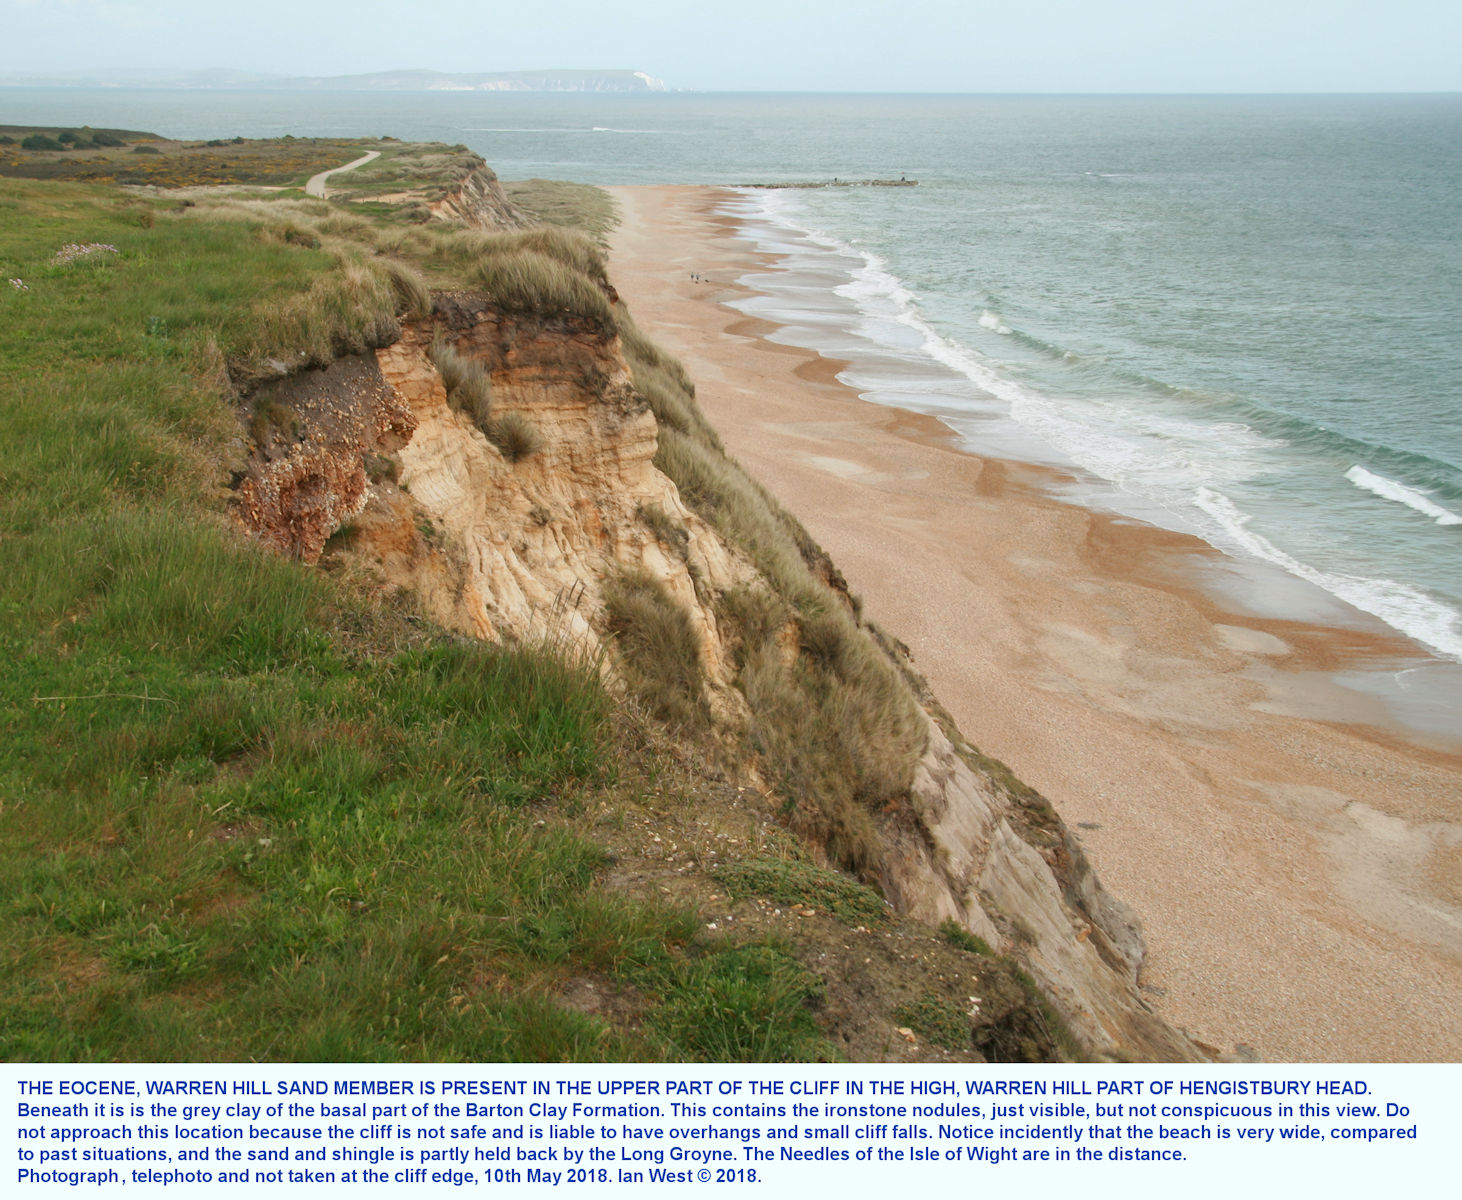 The Warren Hill Sand Member of the Barton Clay Formation, is present in the top of the sea cliffs of Warren Hill, in the western part of Hengistbury Head, Bournemouth, Dorset, but the location is not safe and should not be approached, photograph 10th May 2018